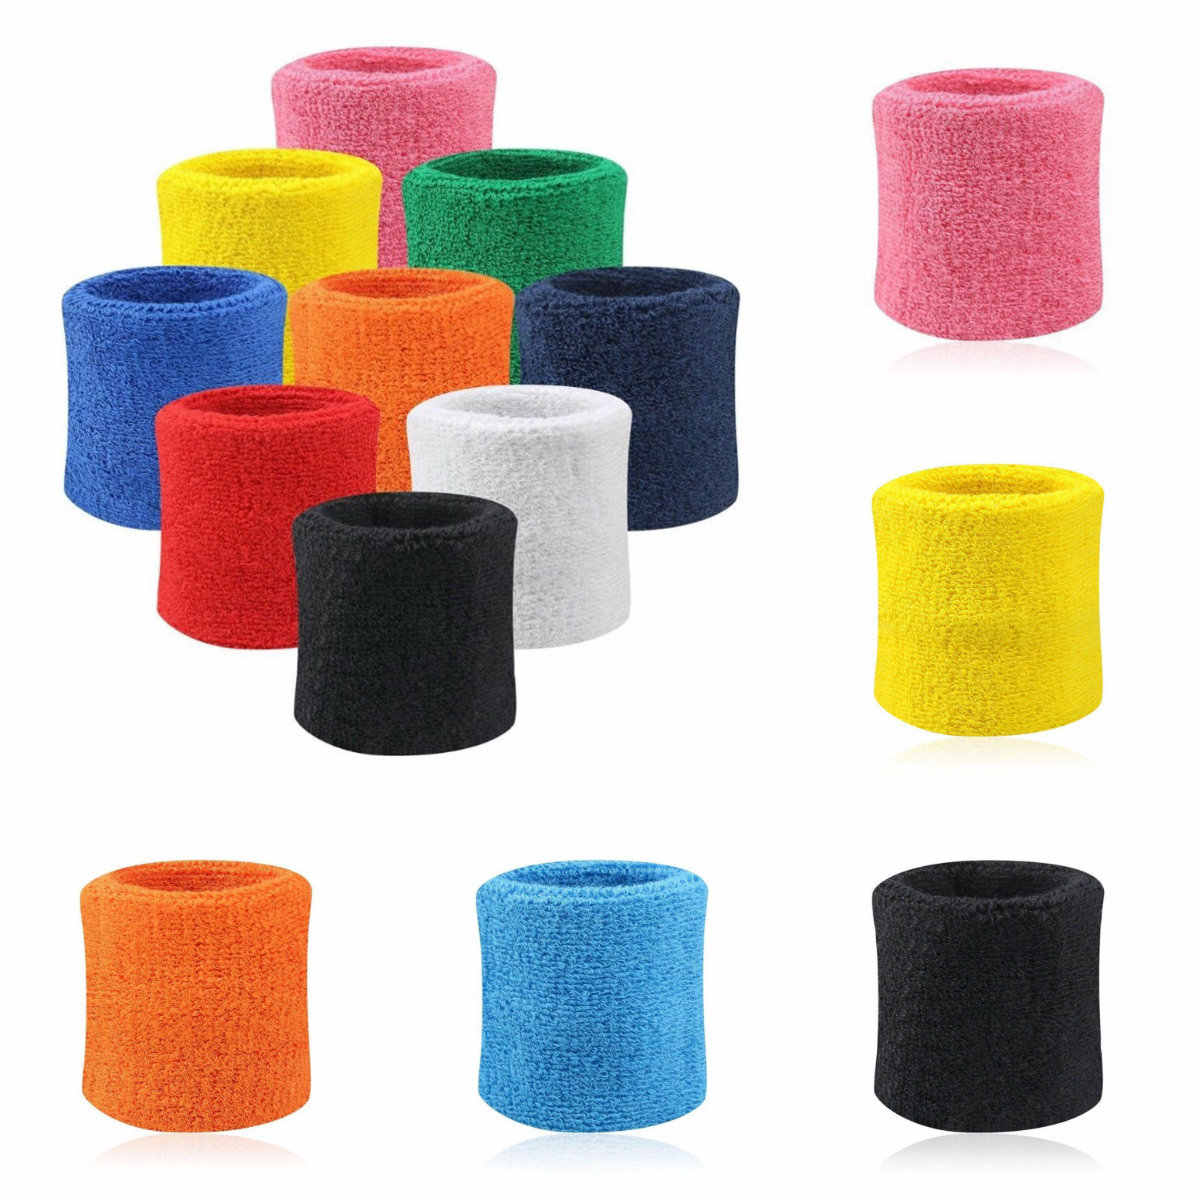 2PCs Wristbands Sport Sweatband Hand Band Sweat Wrist Support Brace Wraps Guards For Gym Volleyball Basketball Teennis Hot